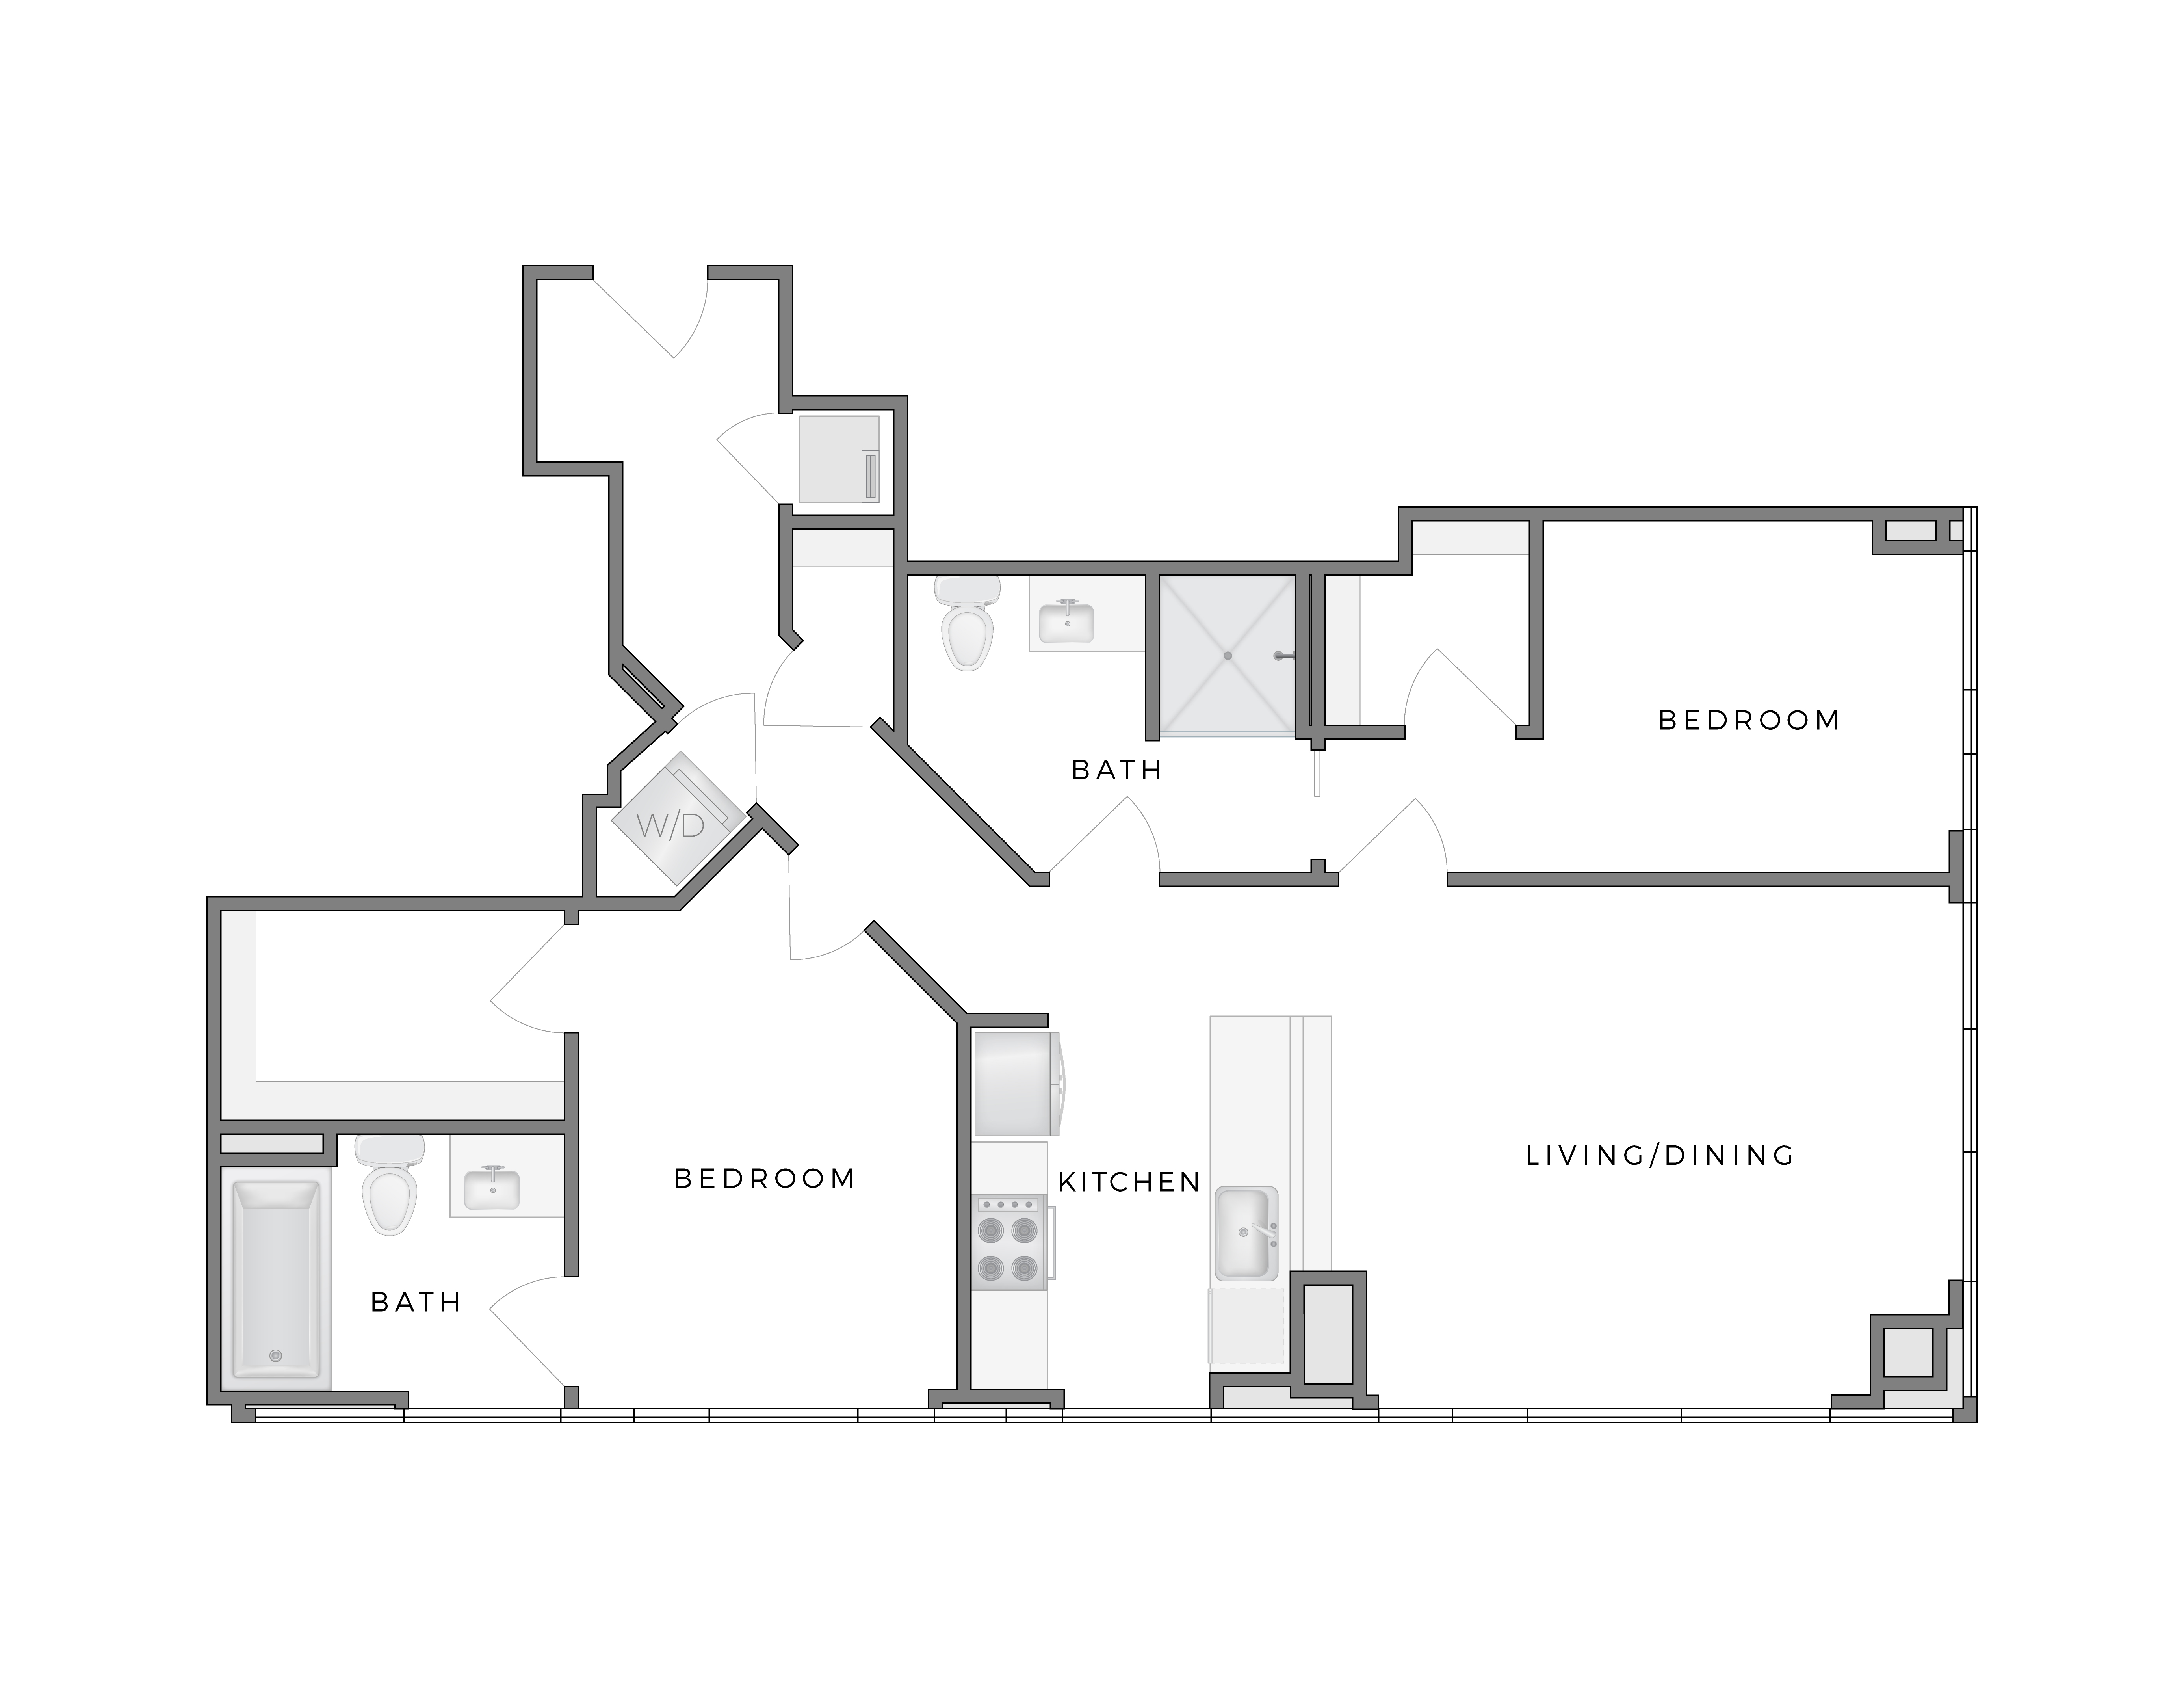 Atelier Hopper 3 apartment floorplan diagram with two bedrooms, two bathrooms, kitchen, and living dining area